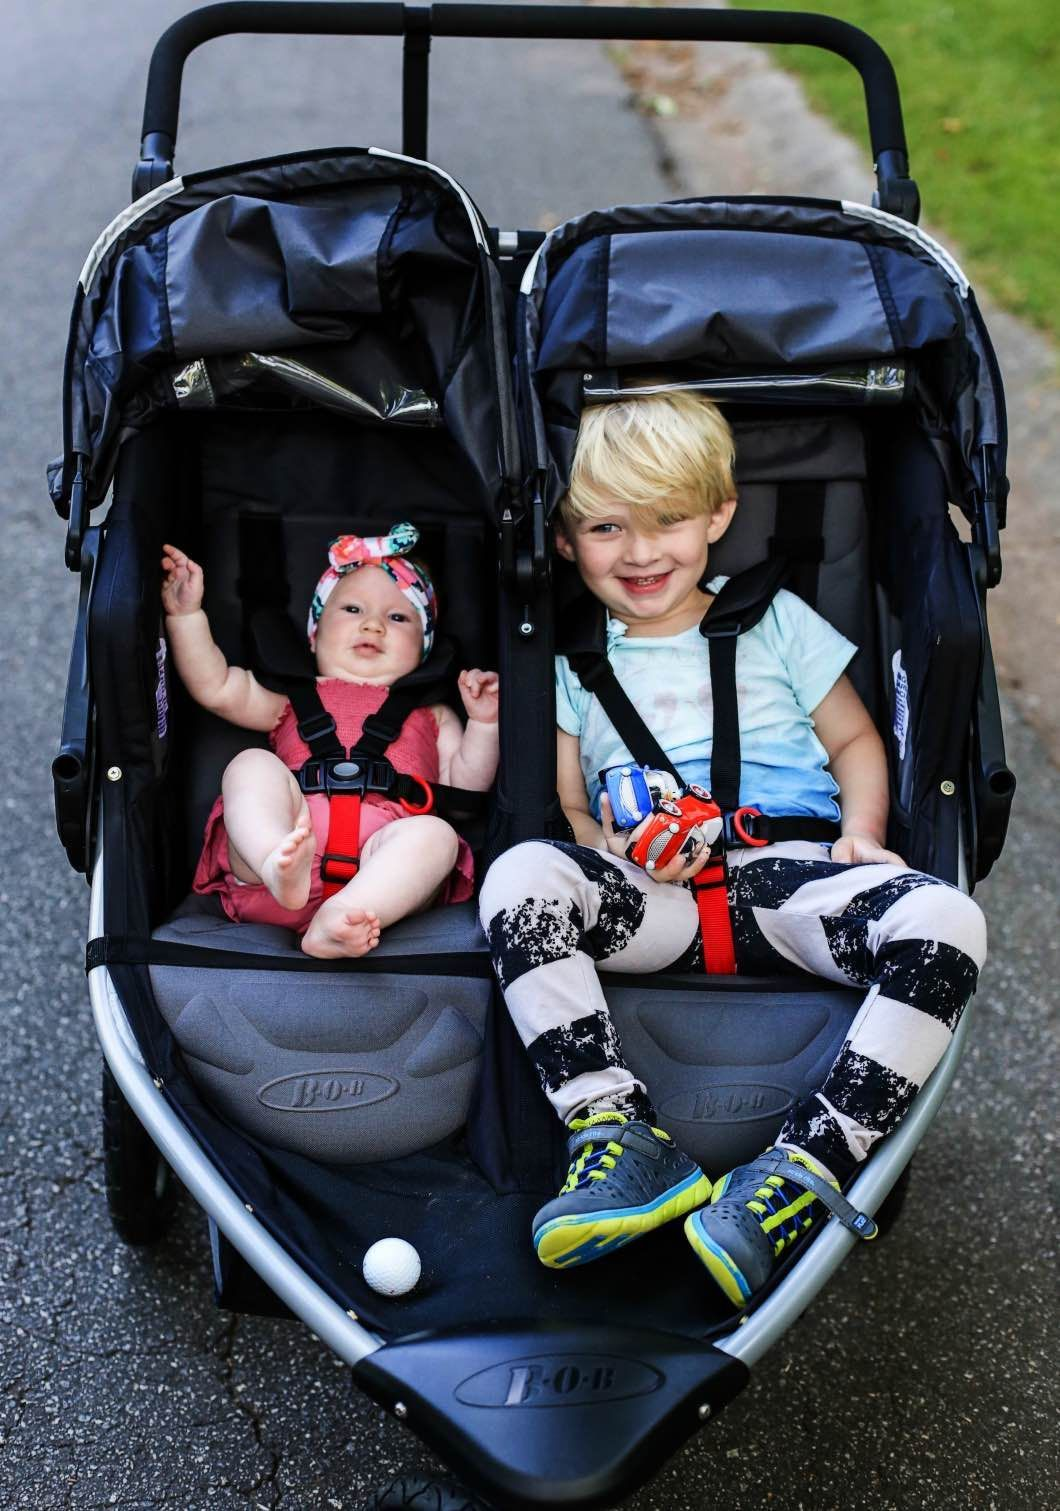 Best Jogging Stroller Travel System in 2020 Do You Need